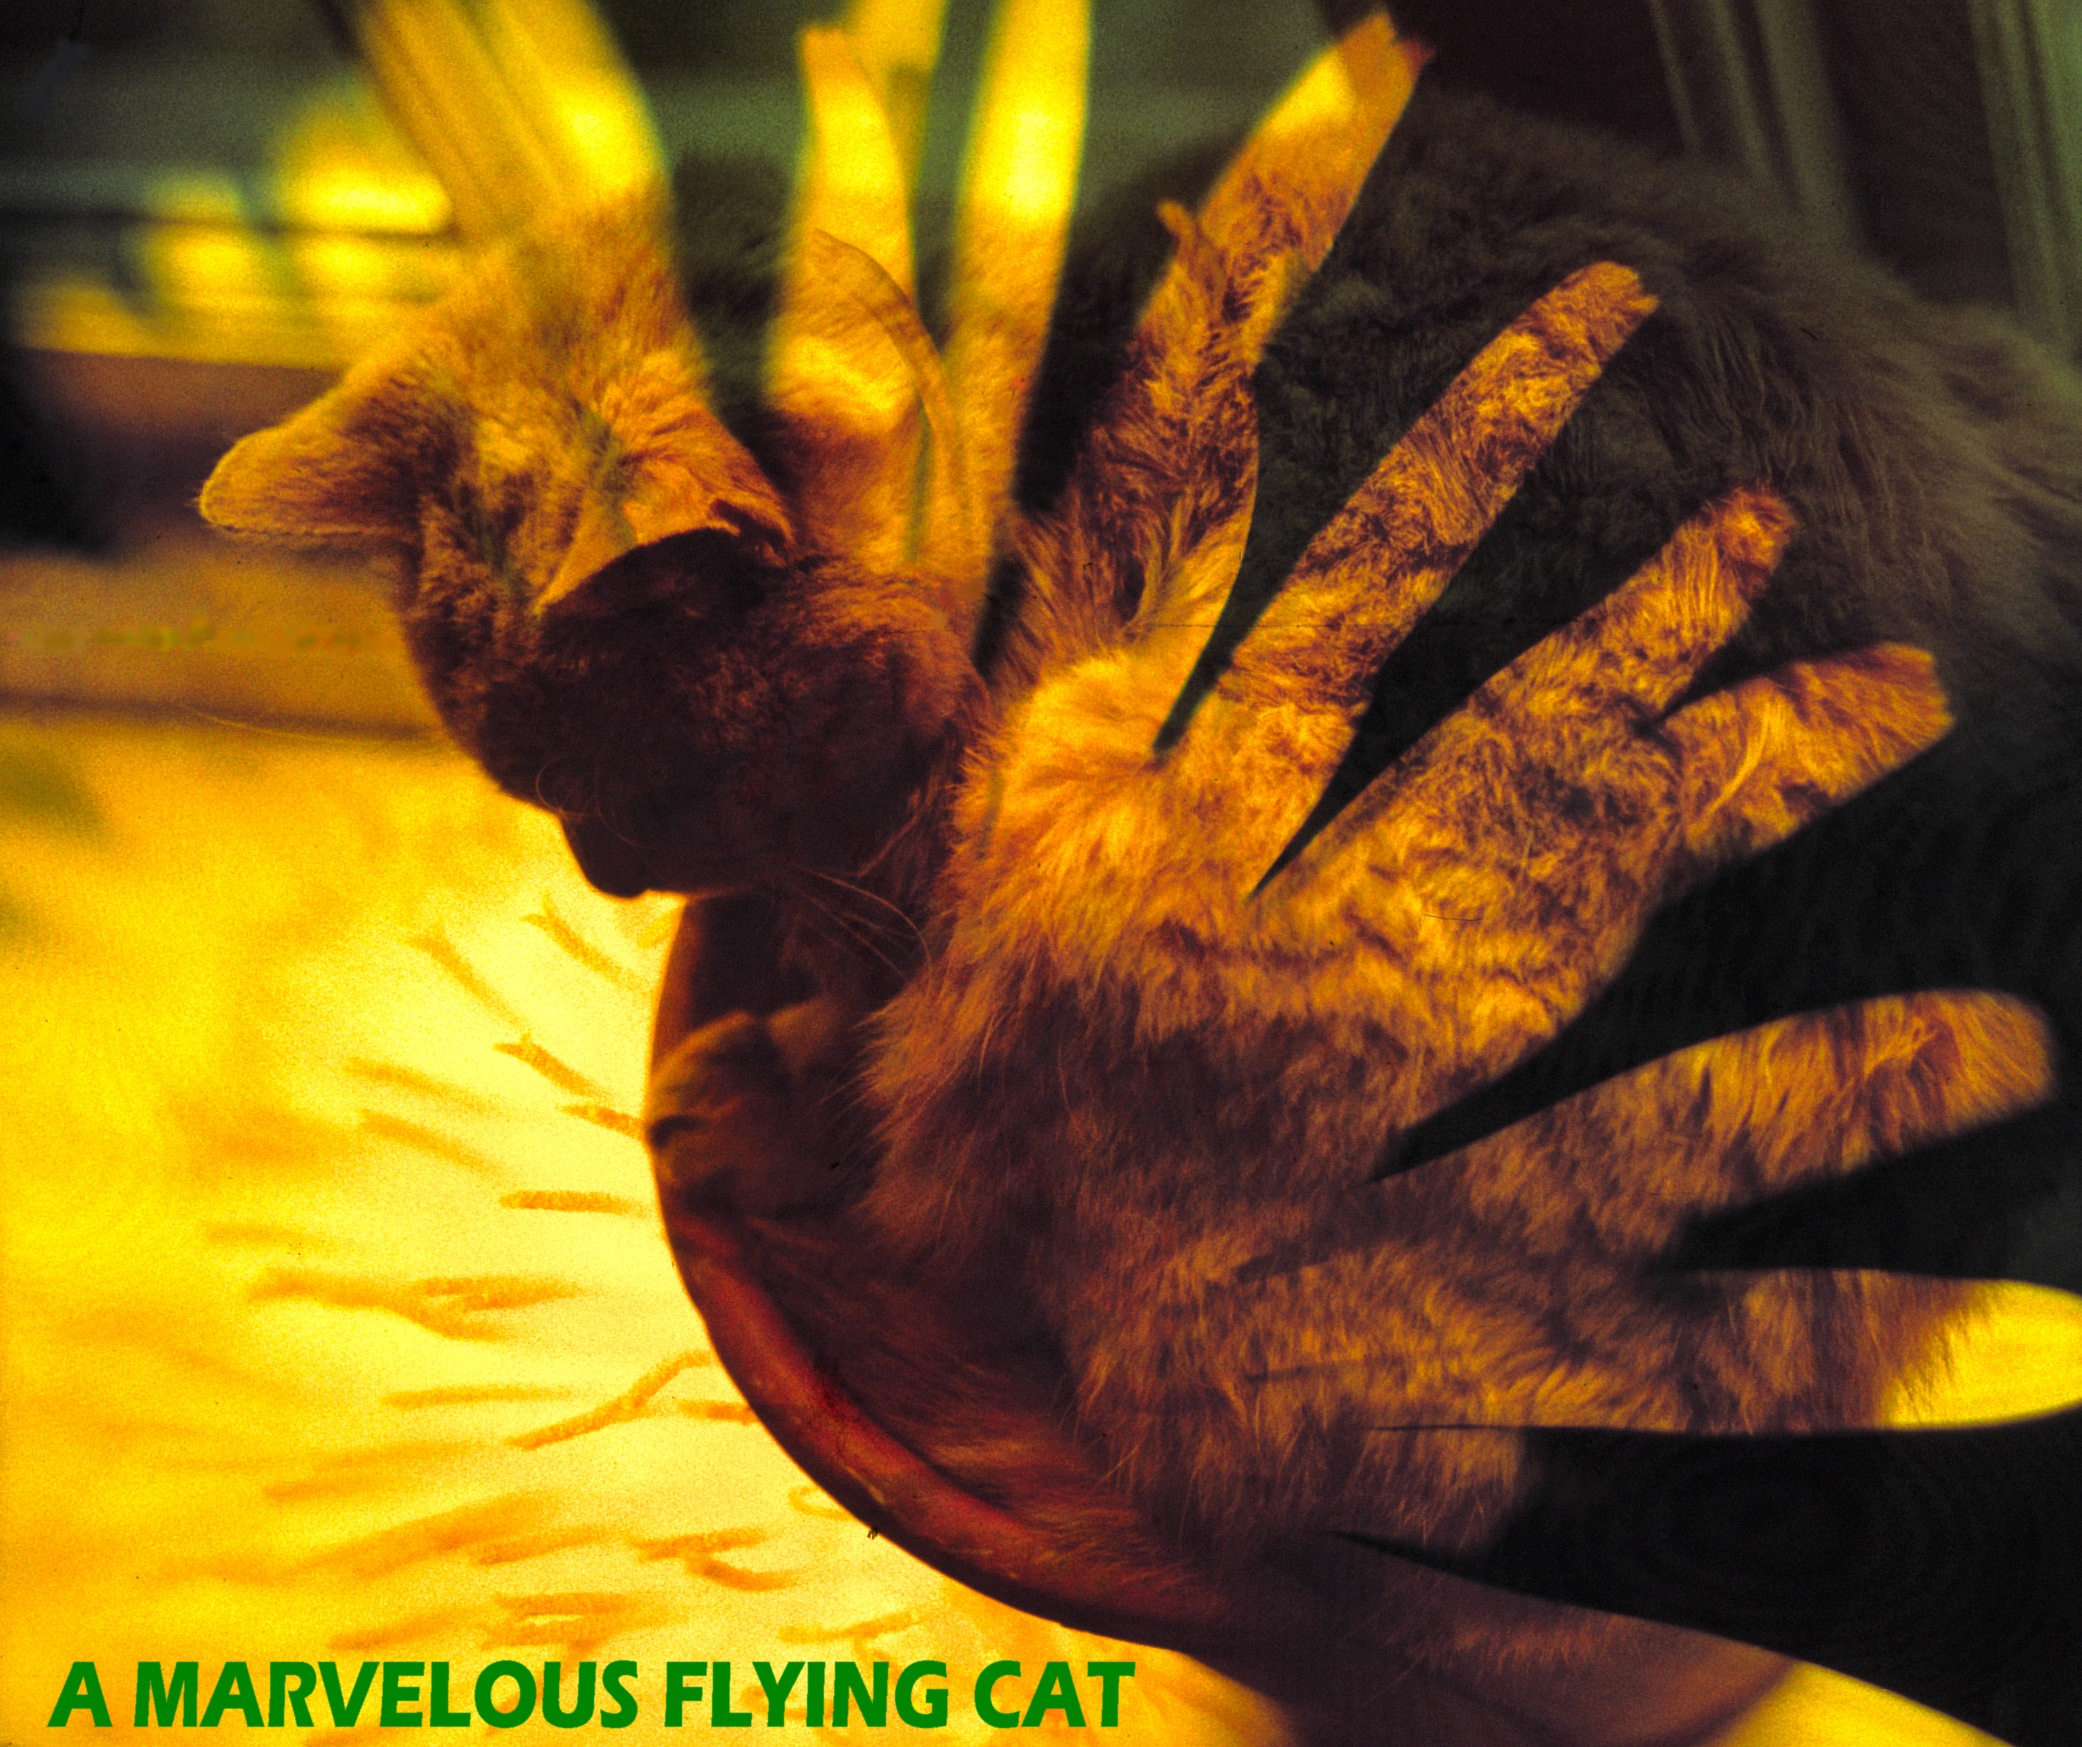 A Marvellous Flying Cat